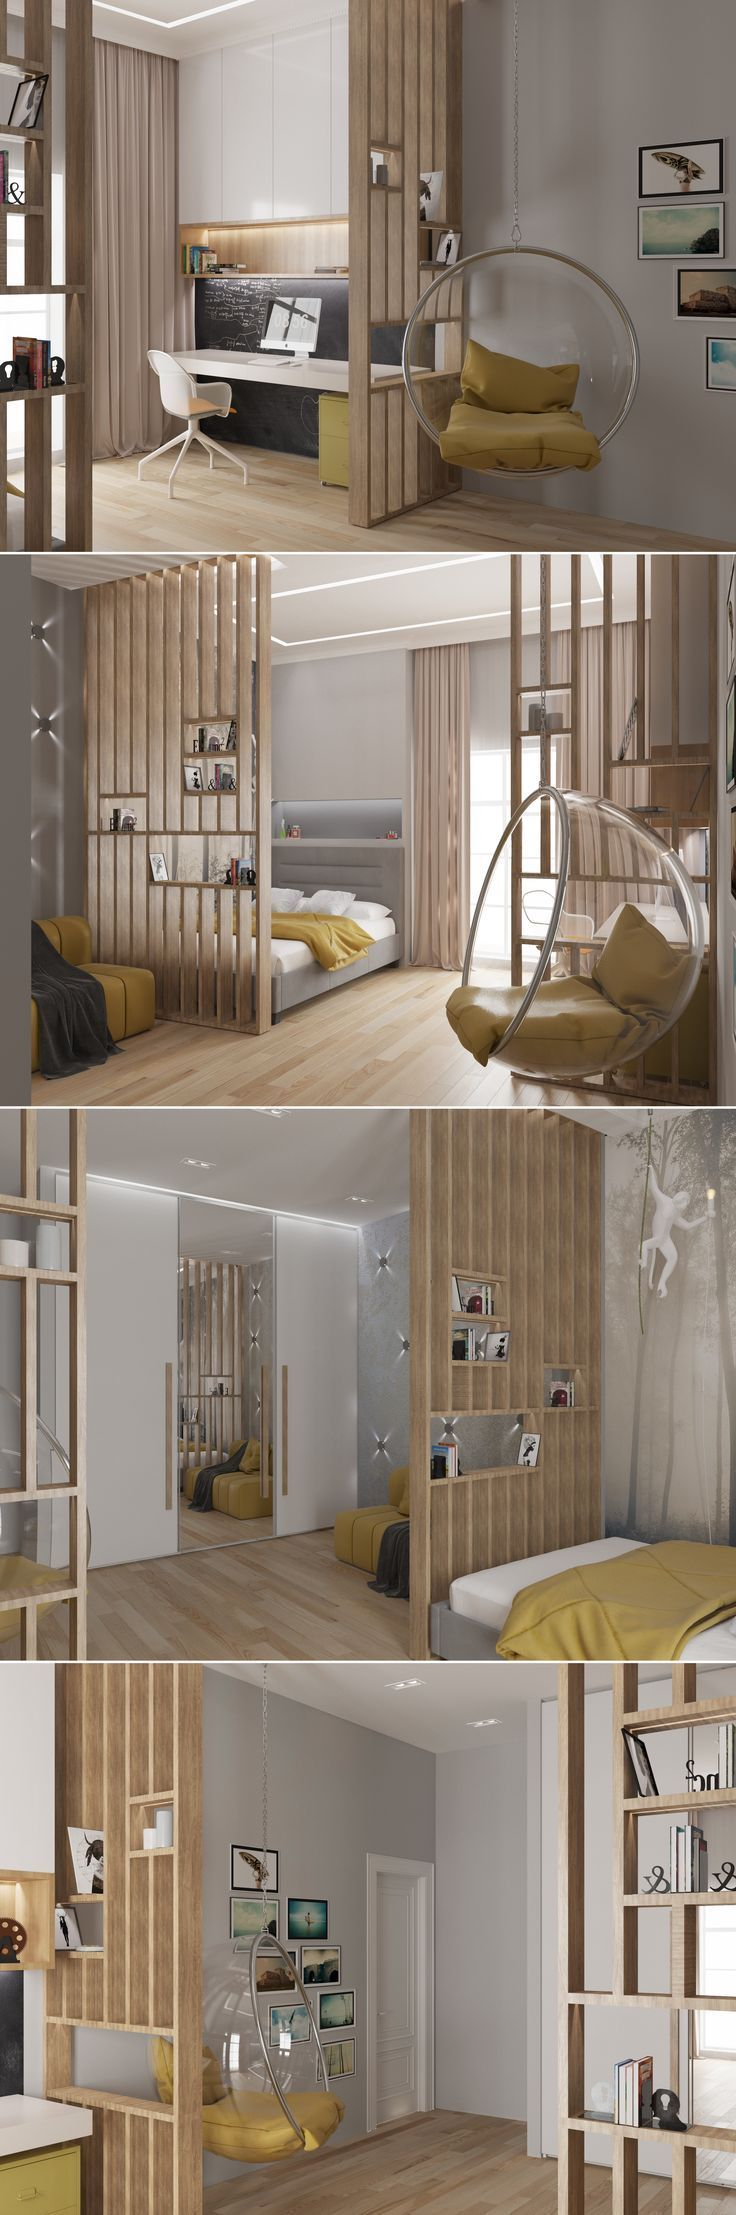 Very nice tiny apartment. Although really small, it gives a friendly and bright ... -  Very nice tiny apartment. Although really small, it gives a friendly and bright feeling. | Very nic - #although #apartment #bright #DigitalMedia #friendly #gives #GraphicDesign #LogosDesign #nice #really #small #Tiny